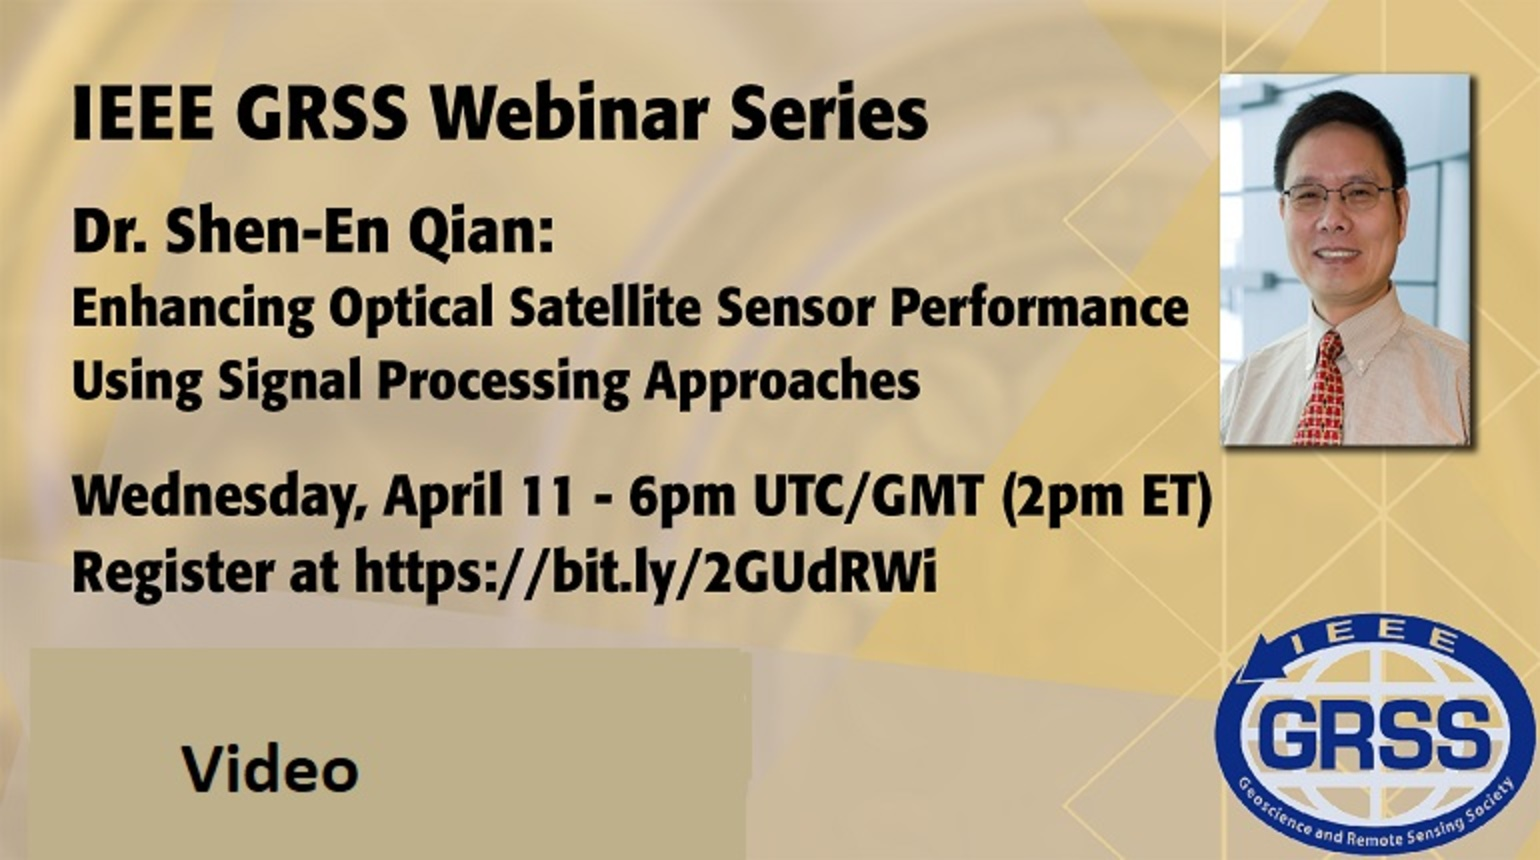 Enhancing Optical Satellite Sensor Performance Using Signal Processing Approaches - Video